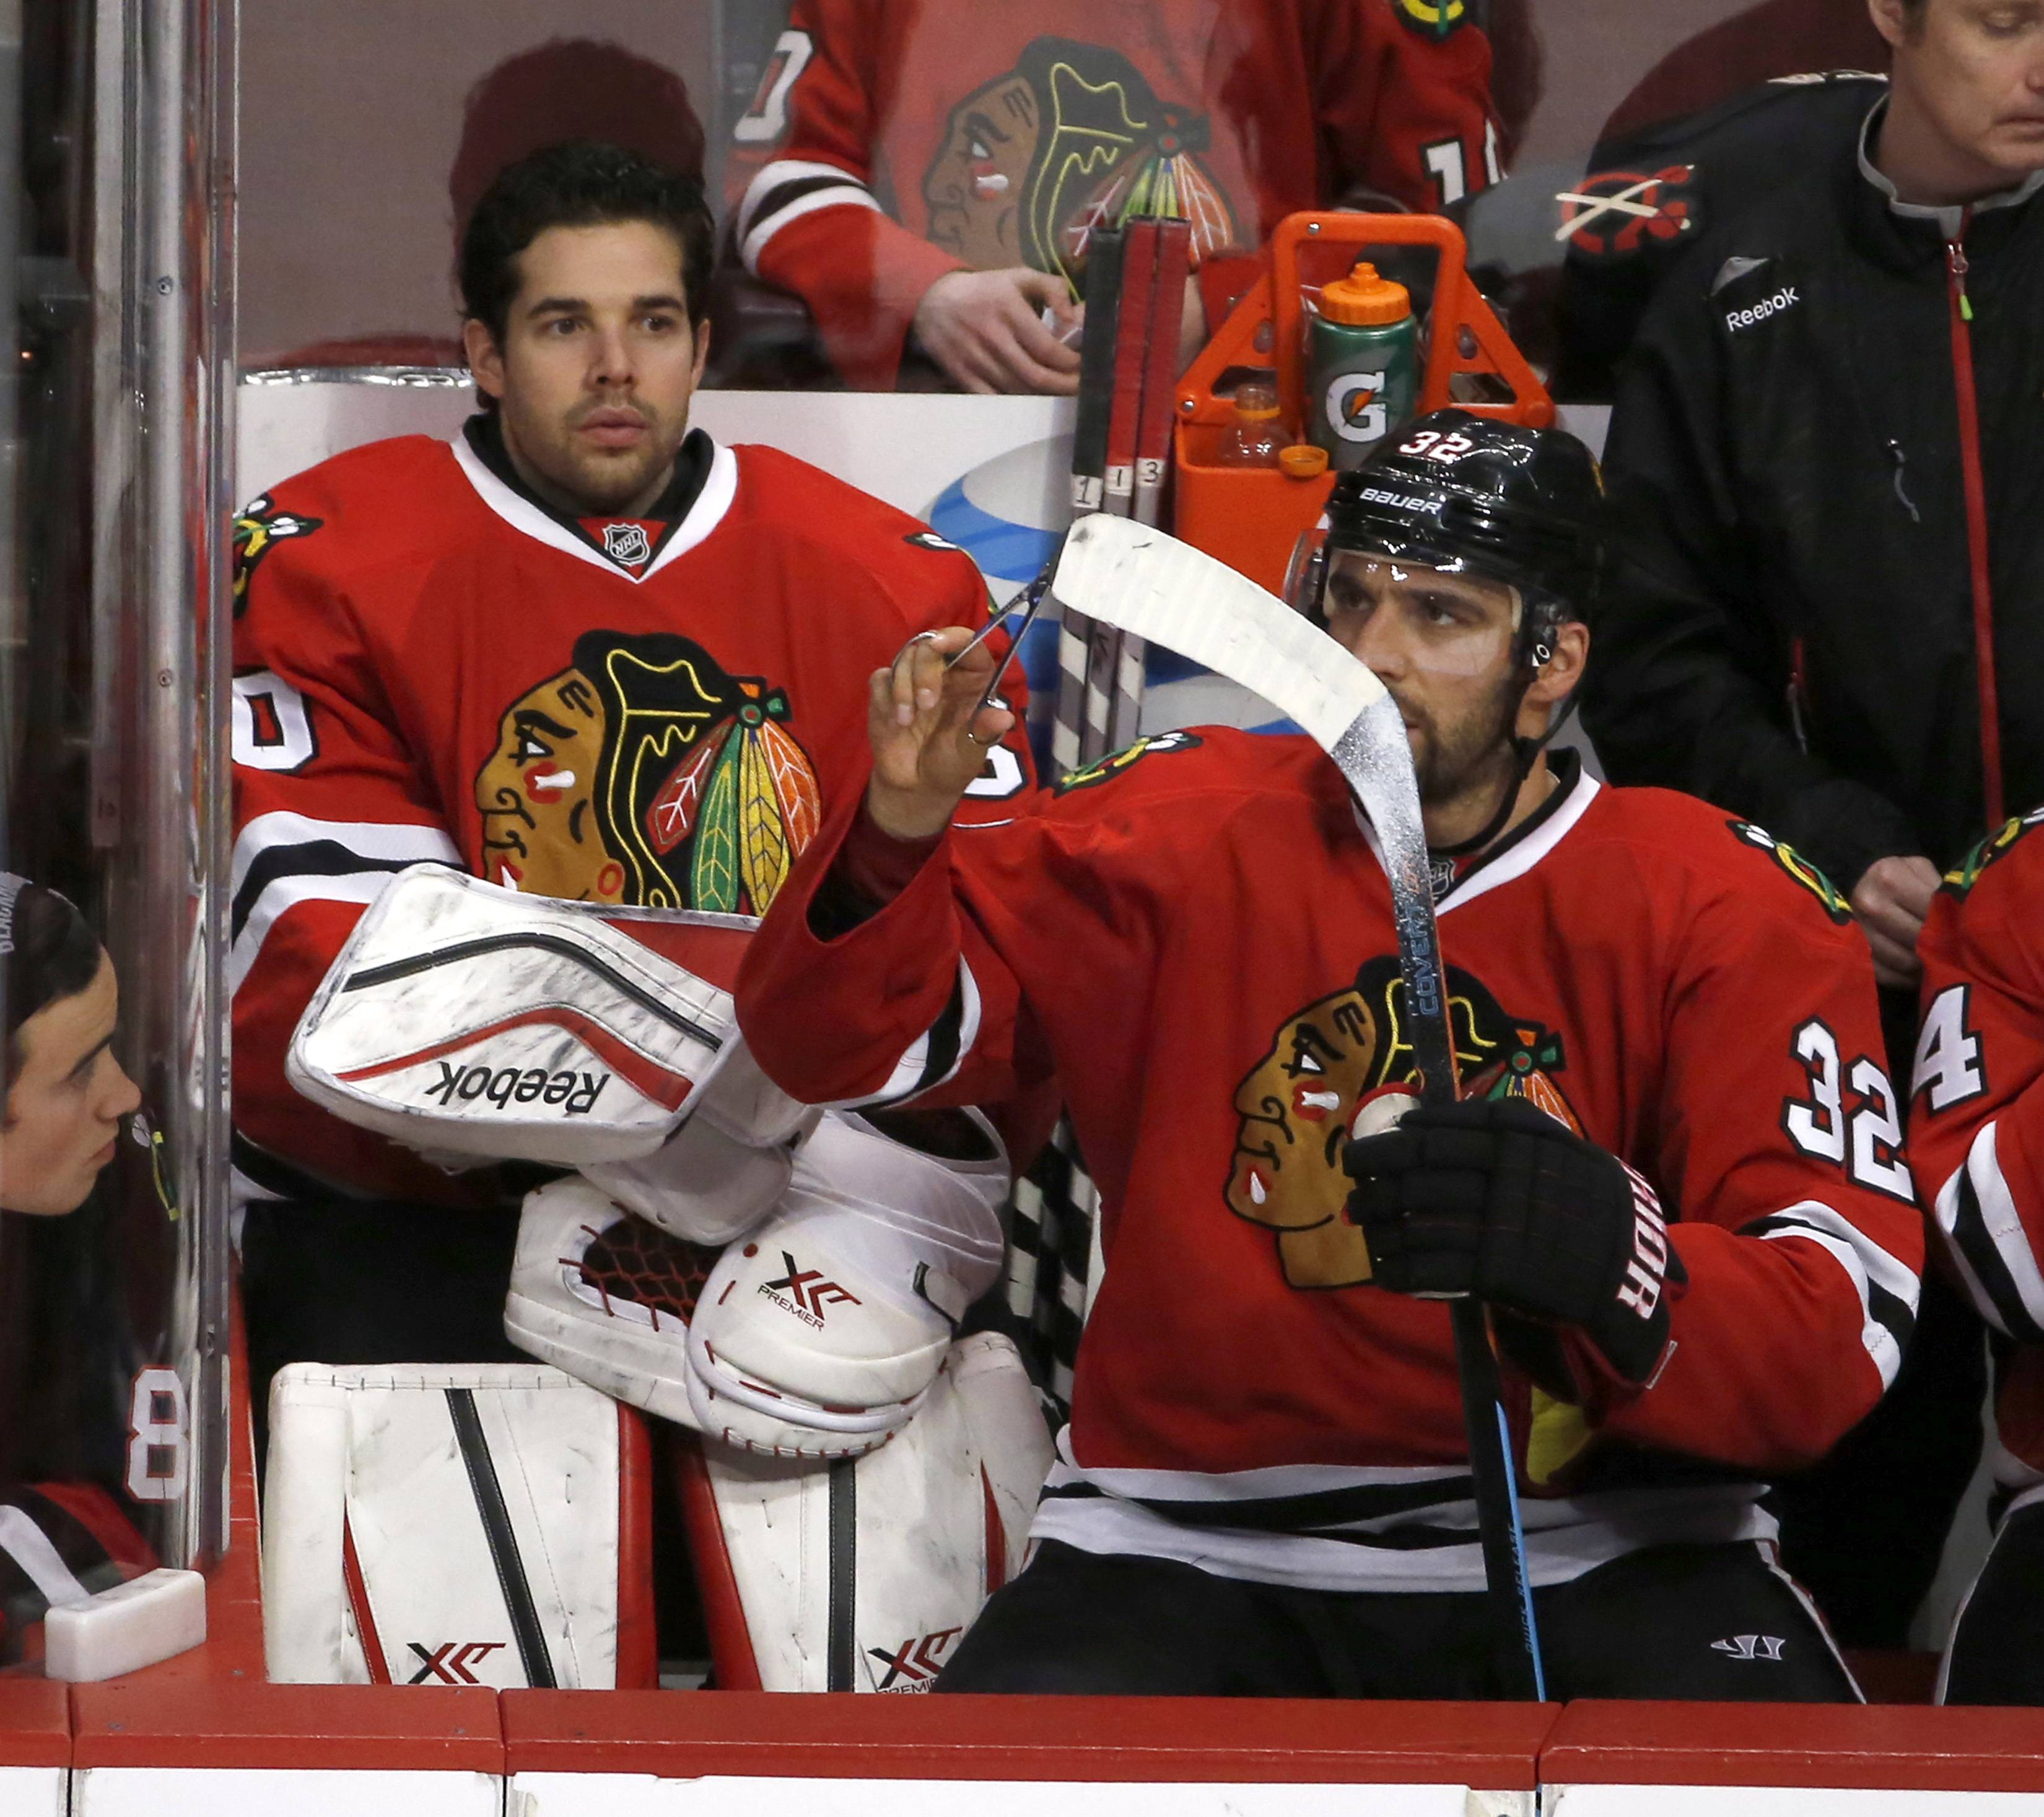 Could Blackhawks starting goalie Corey Crawford, taken out of the game Tuesday after giving up 3 first-period goals to the Jets, be traded after this season?